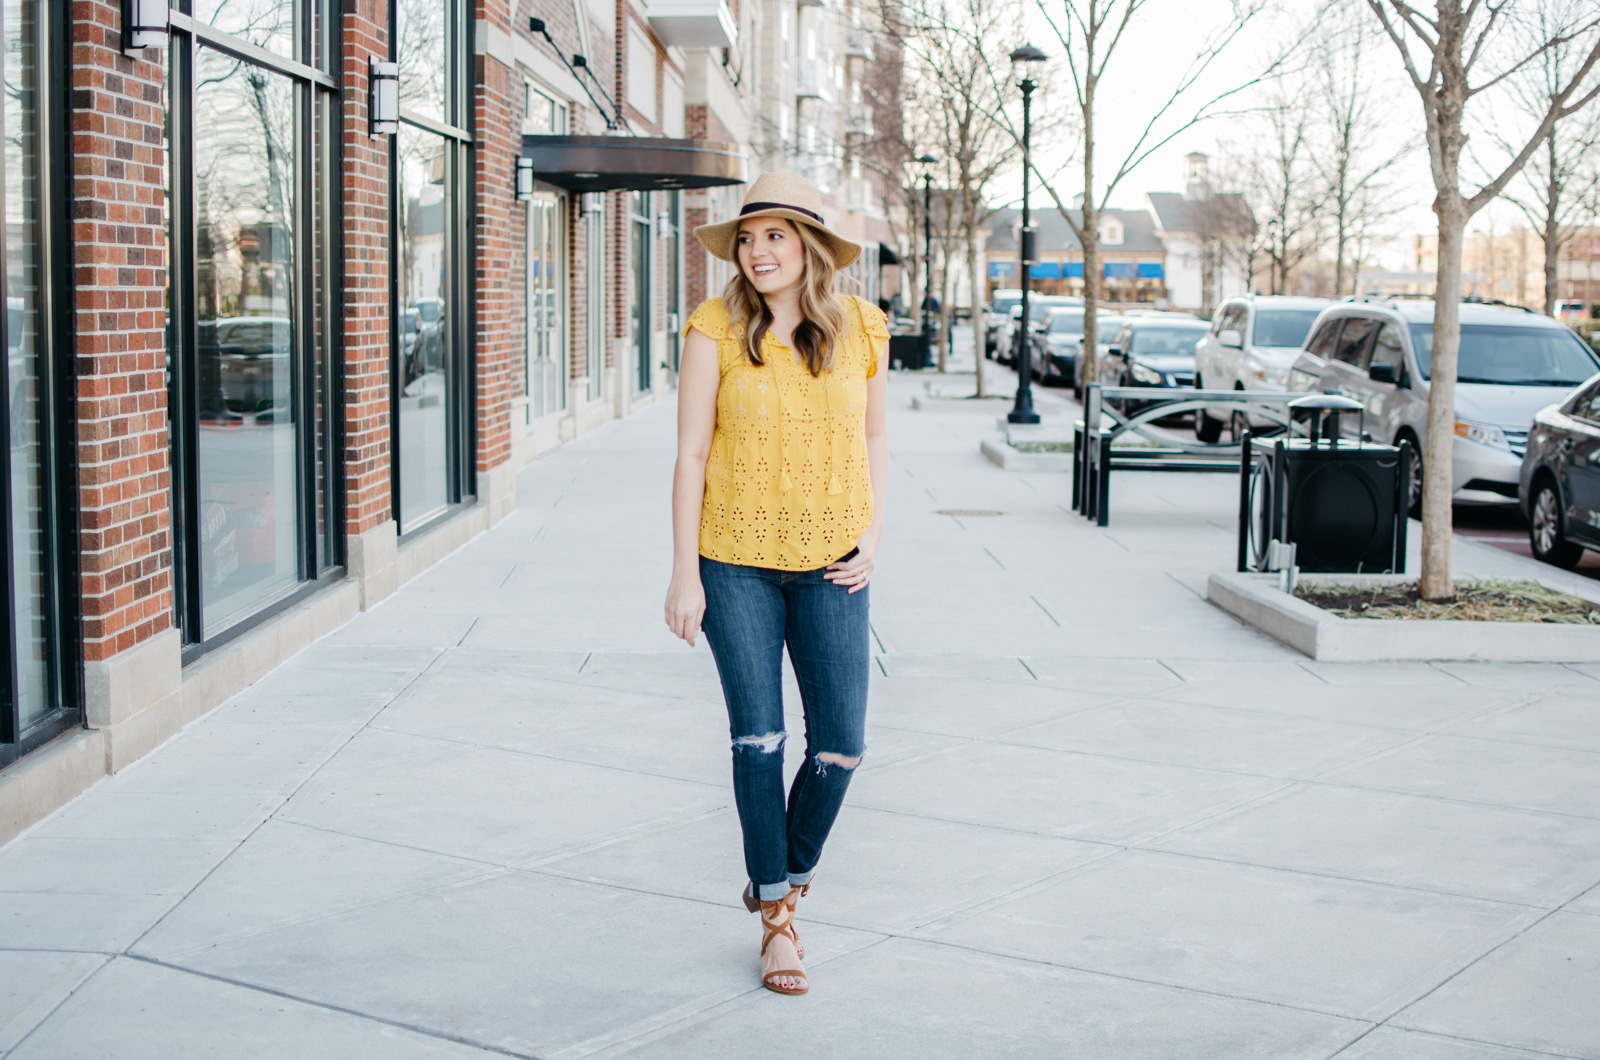 cute spring outfit idea with yellow top - click through for more Spring outfits or to shop this look! | www.bylaurenm.com